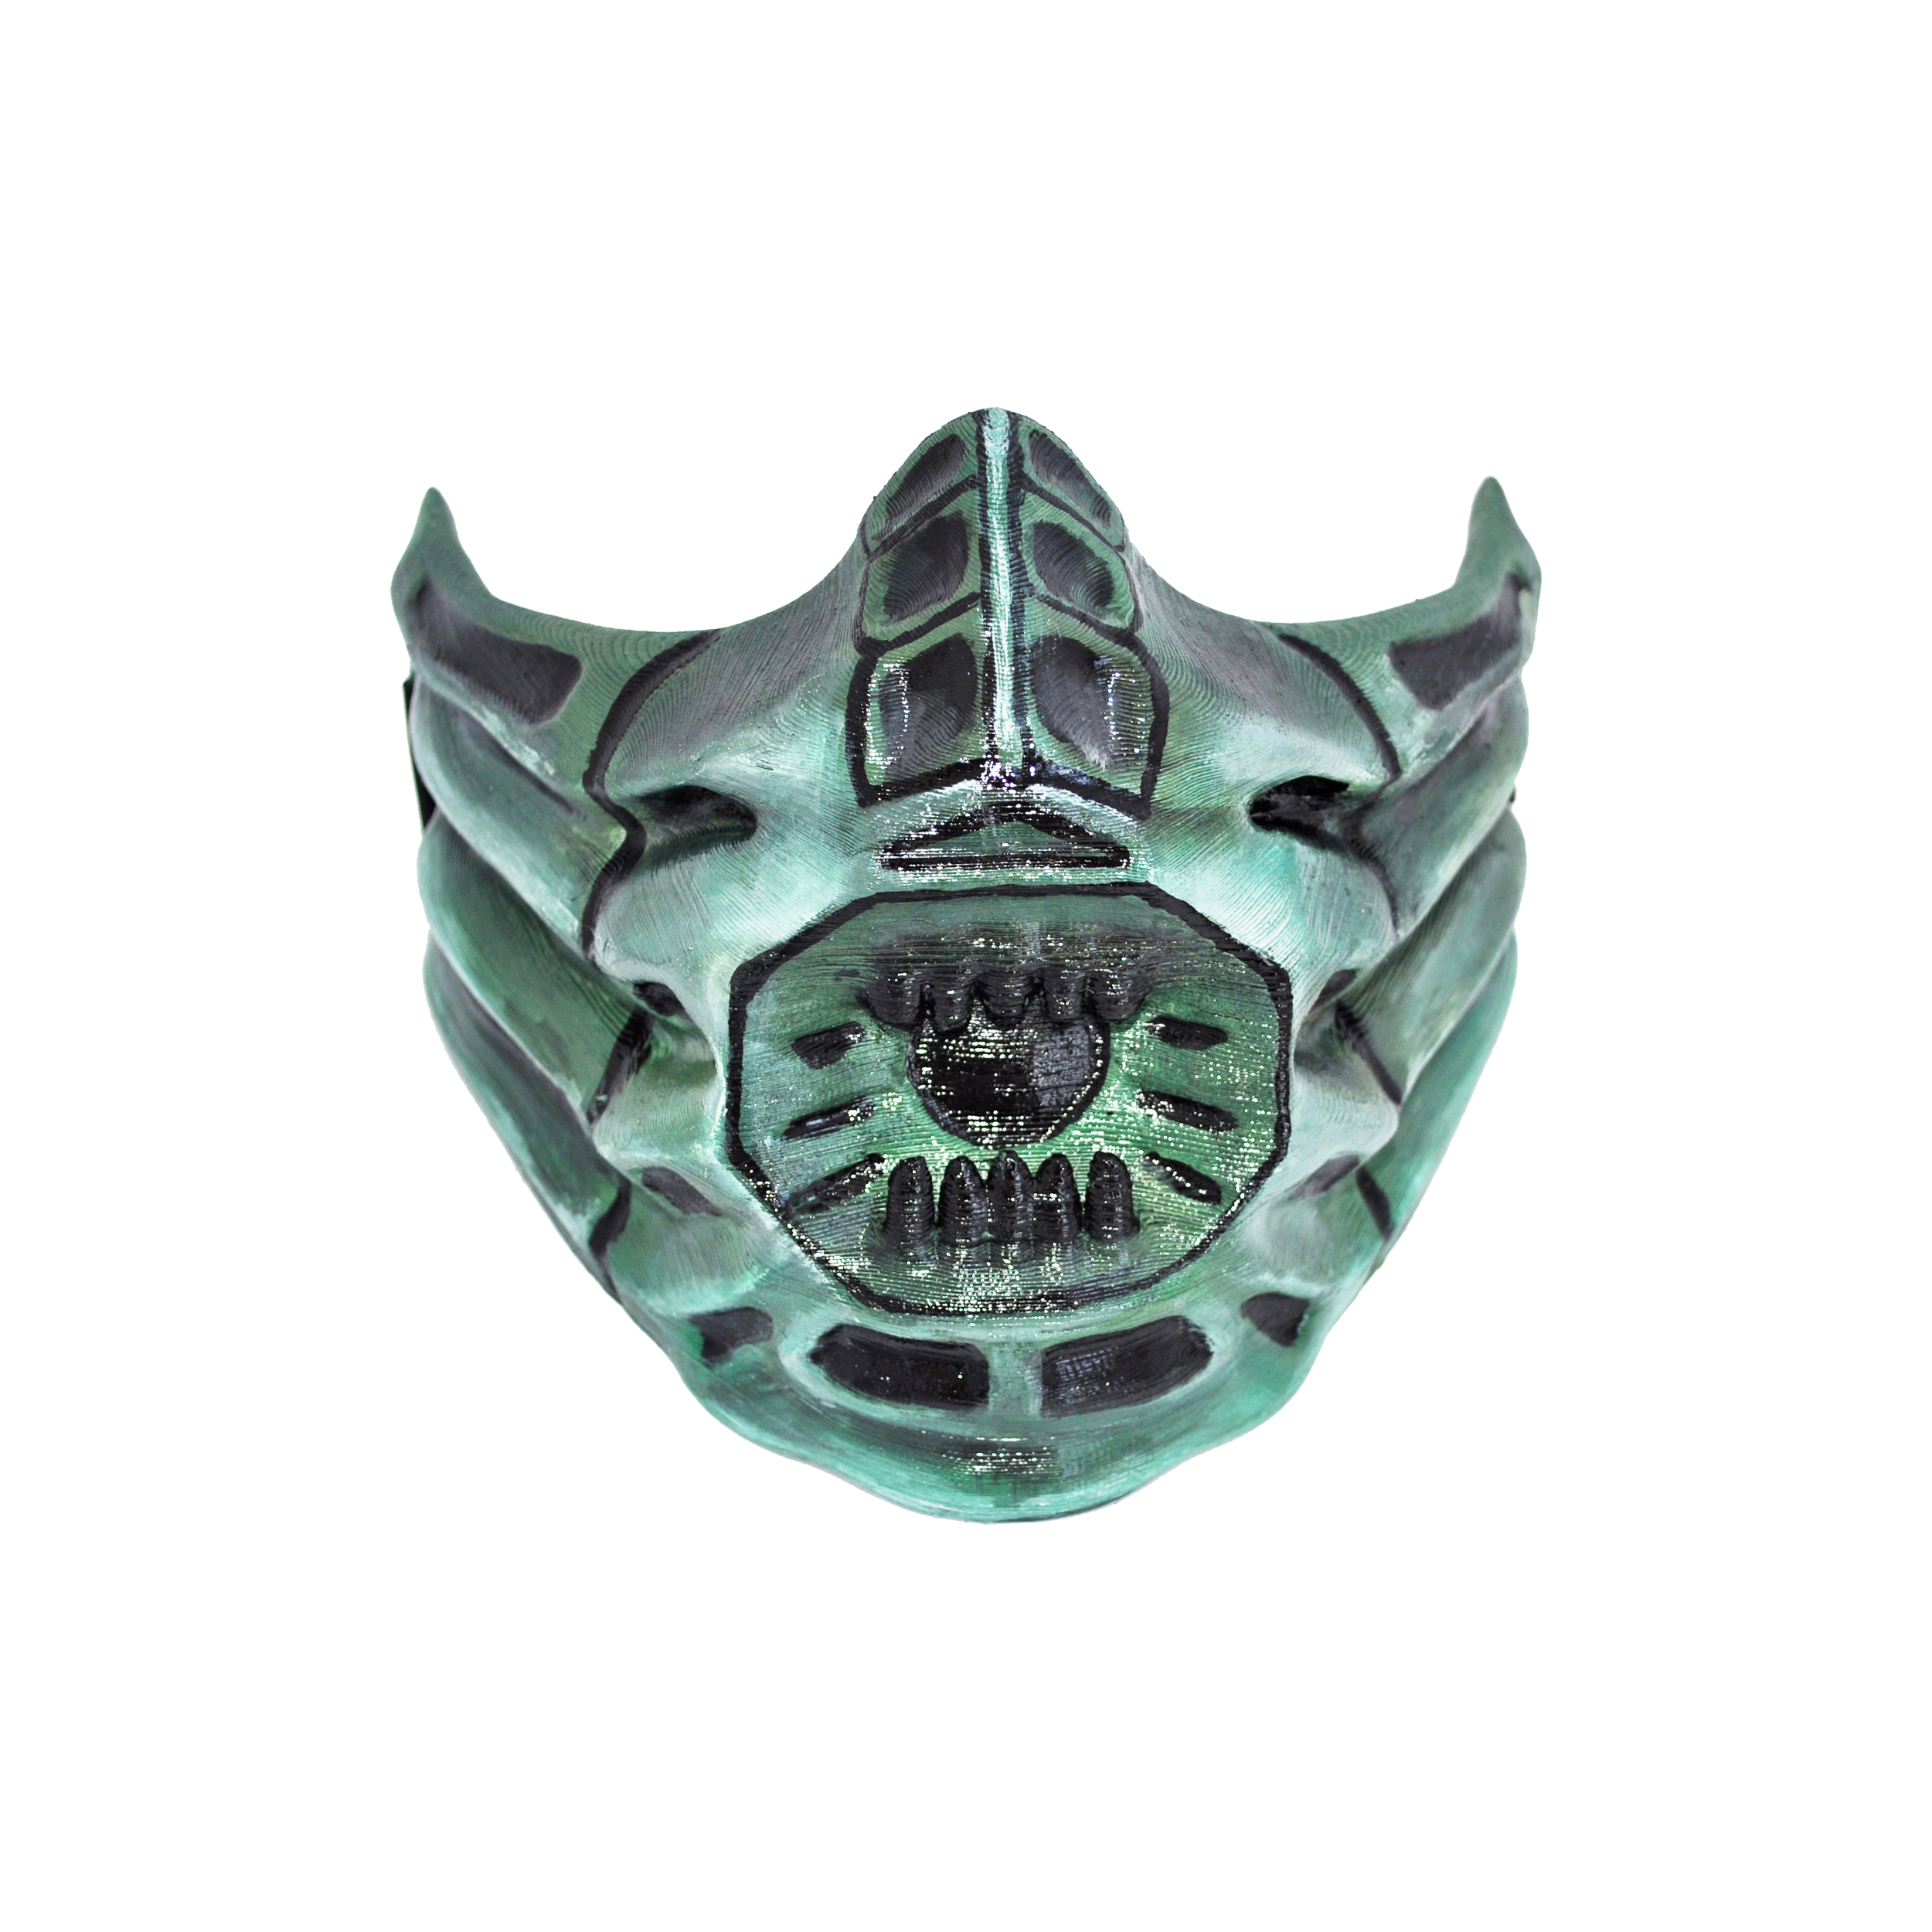 professionnel prix compétitif plus grand choix de 2019 Reptile mask from MK. Cosplay or airsoft mask